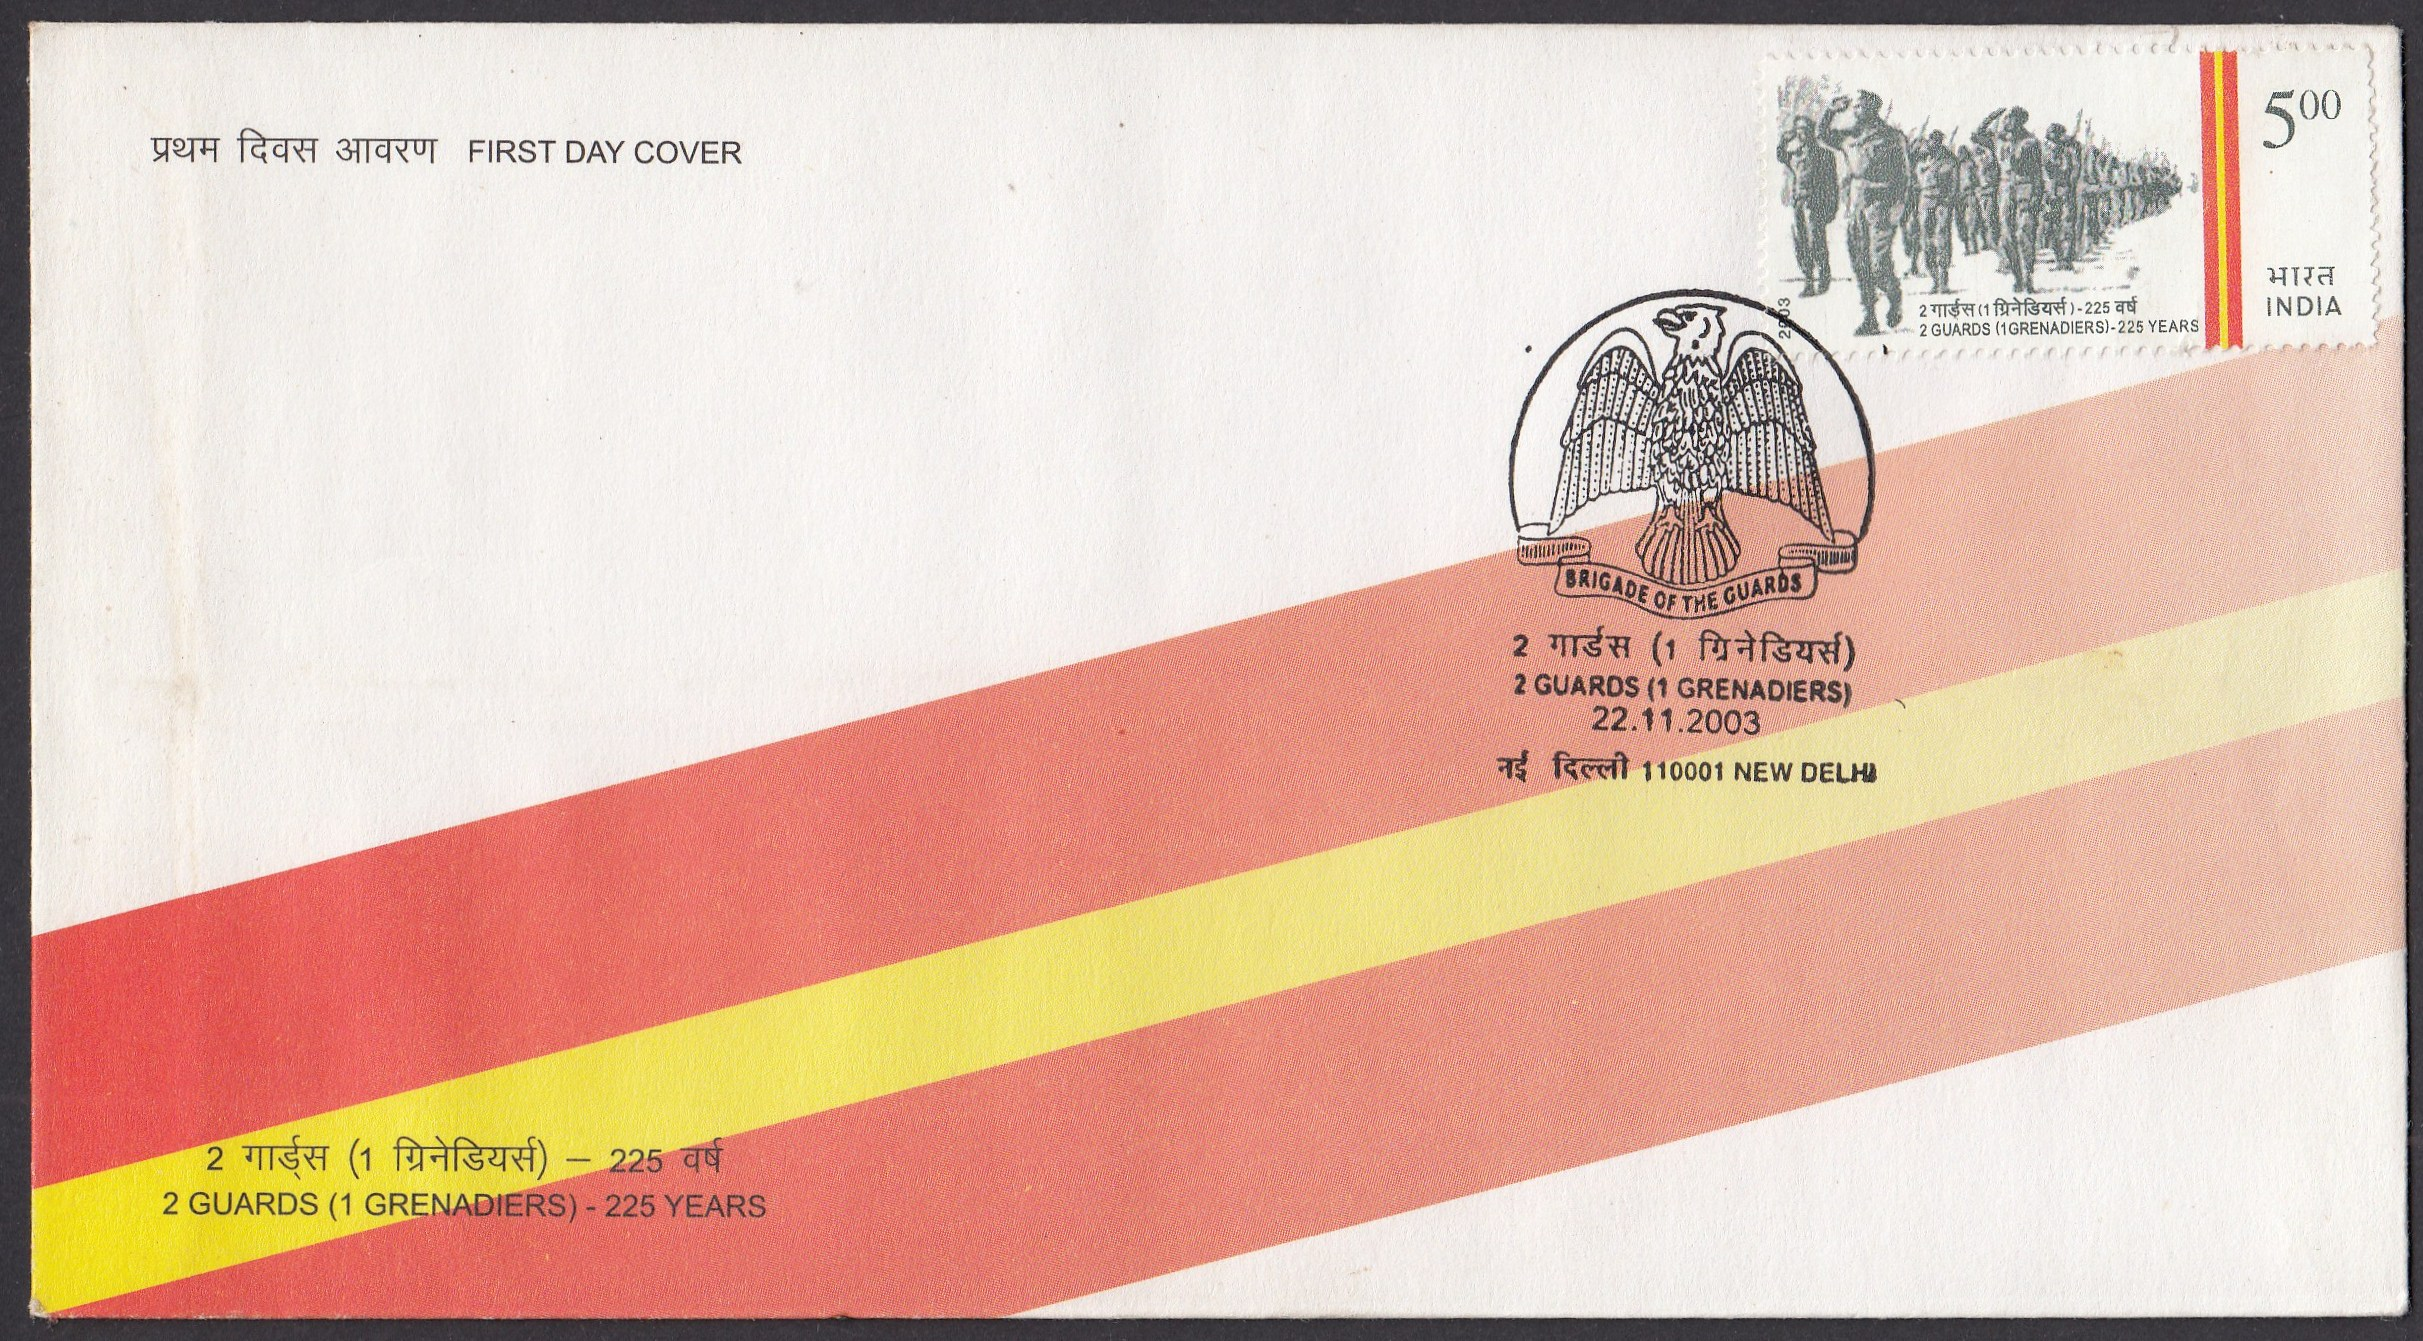 India 2003 First Day Cover FDC 2nd Guard (1 Grenadiers) 225 Years (F599)